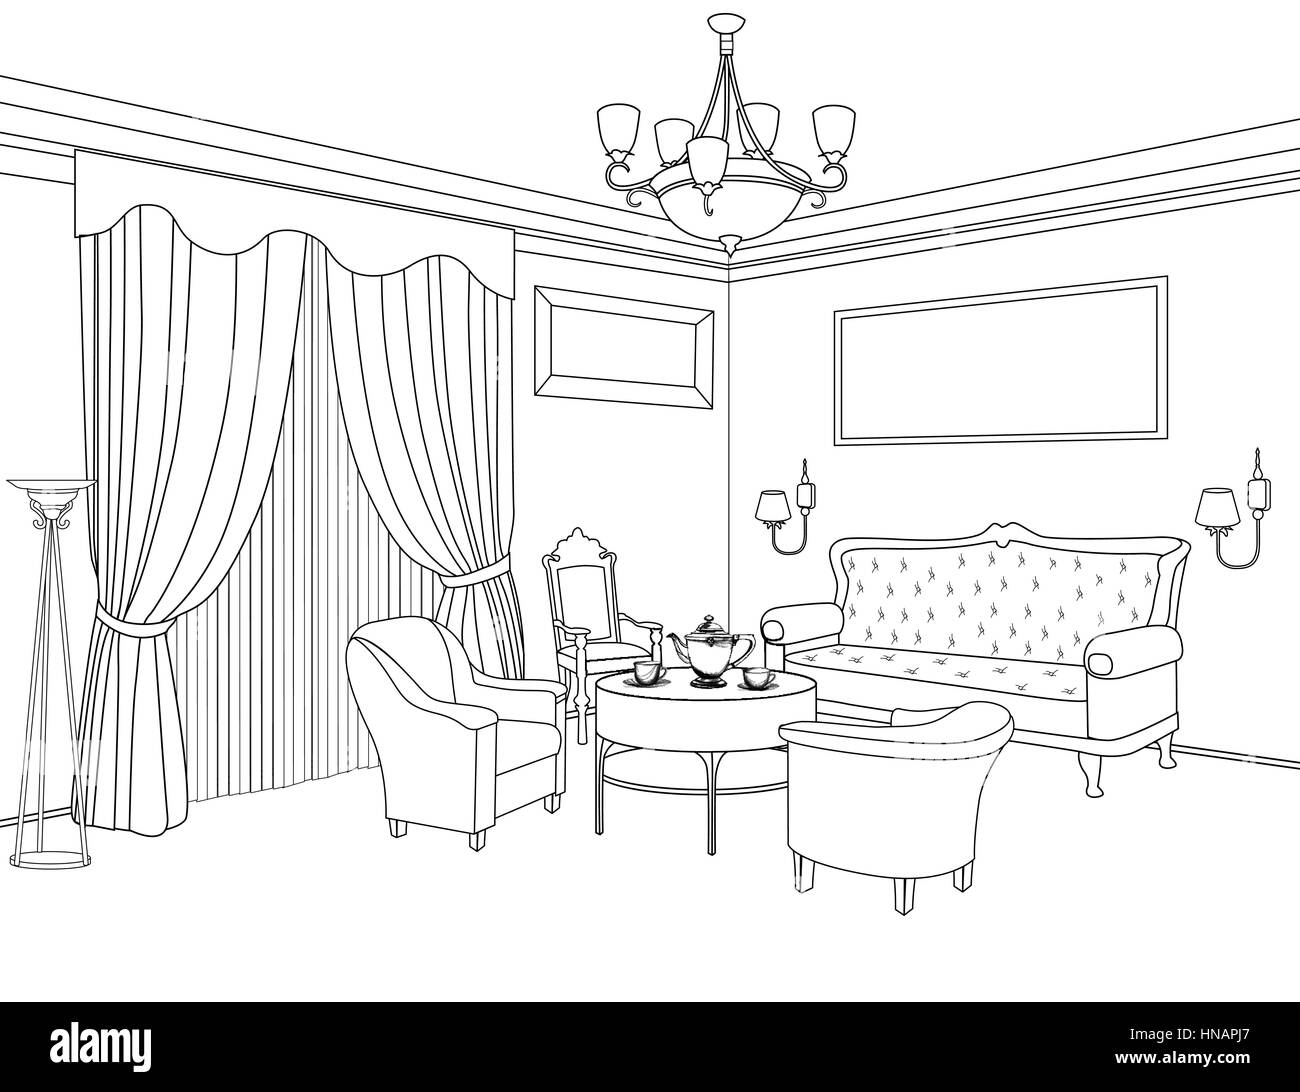 Delightful Interior Outline Sketch. Furniture Blueprint. Architectural Design. Living  Room